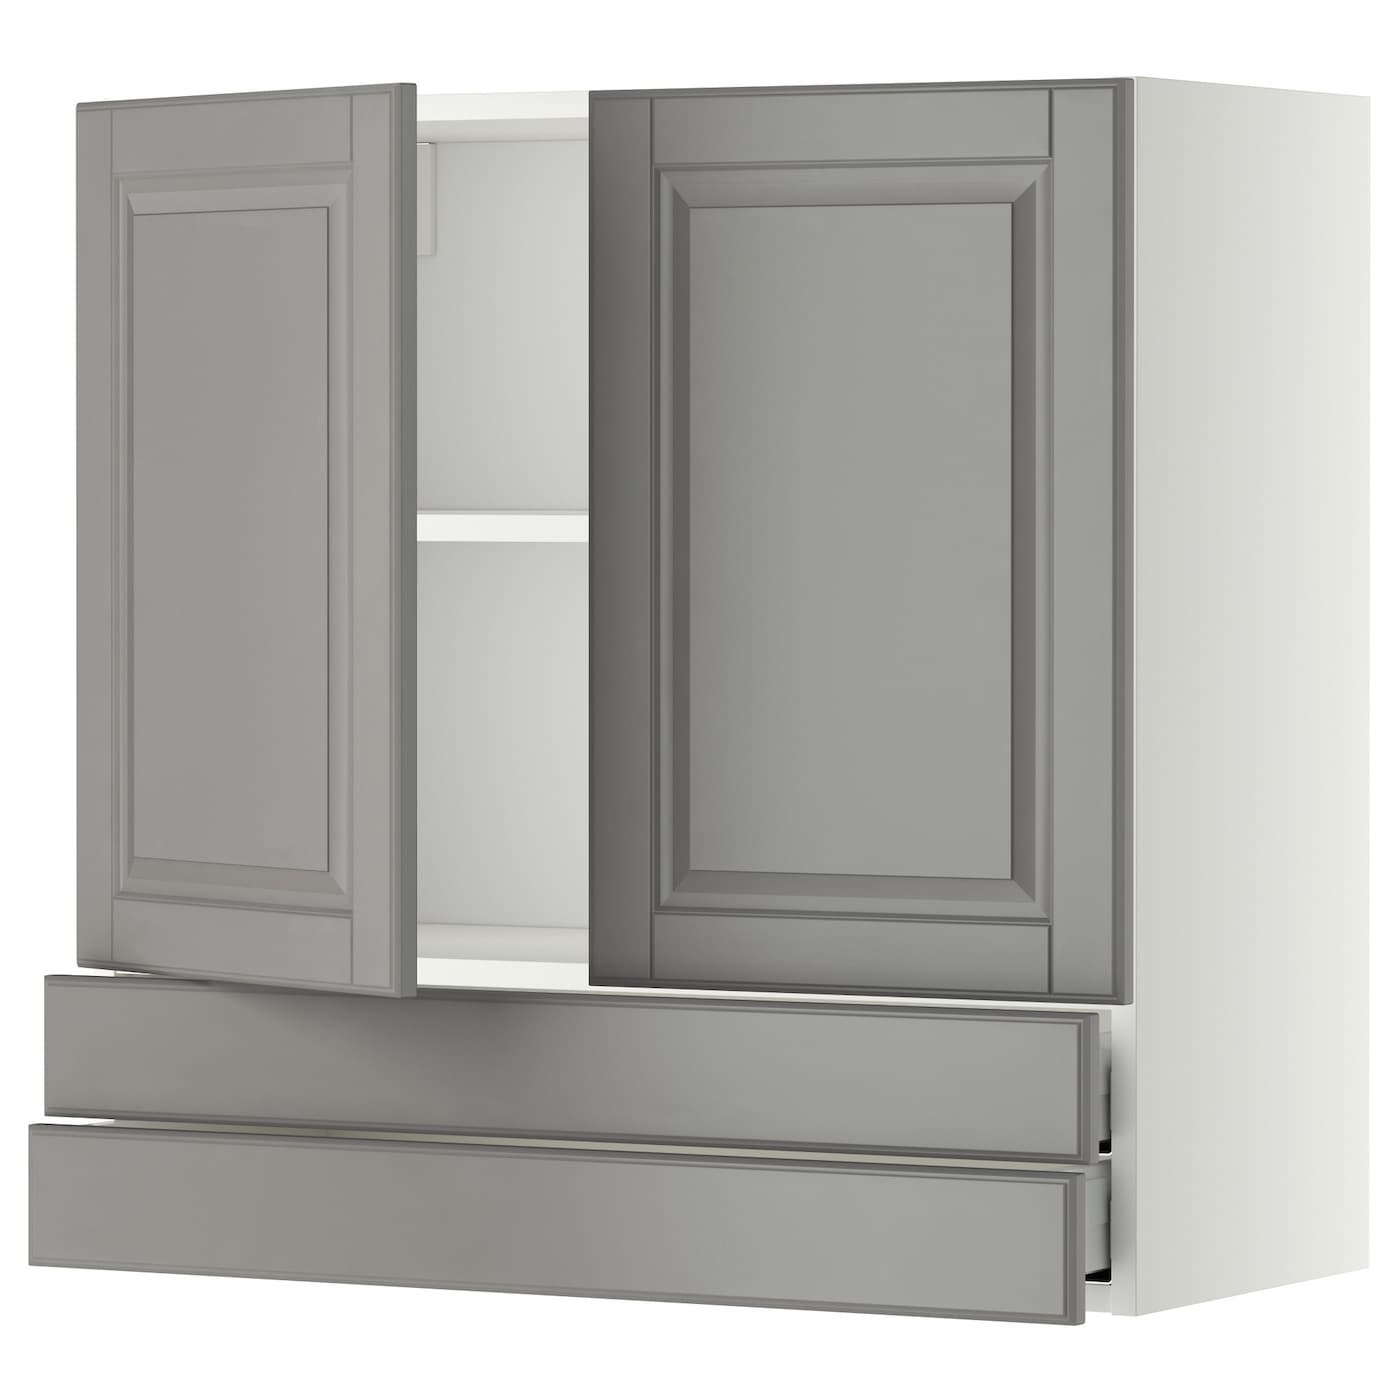 Escape Gray Kitchen: METOD/MAXIMERA Wall Cabinet W 2 Doors/2 Drawers White